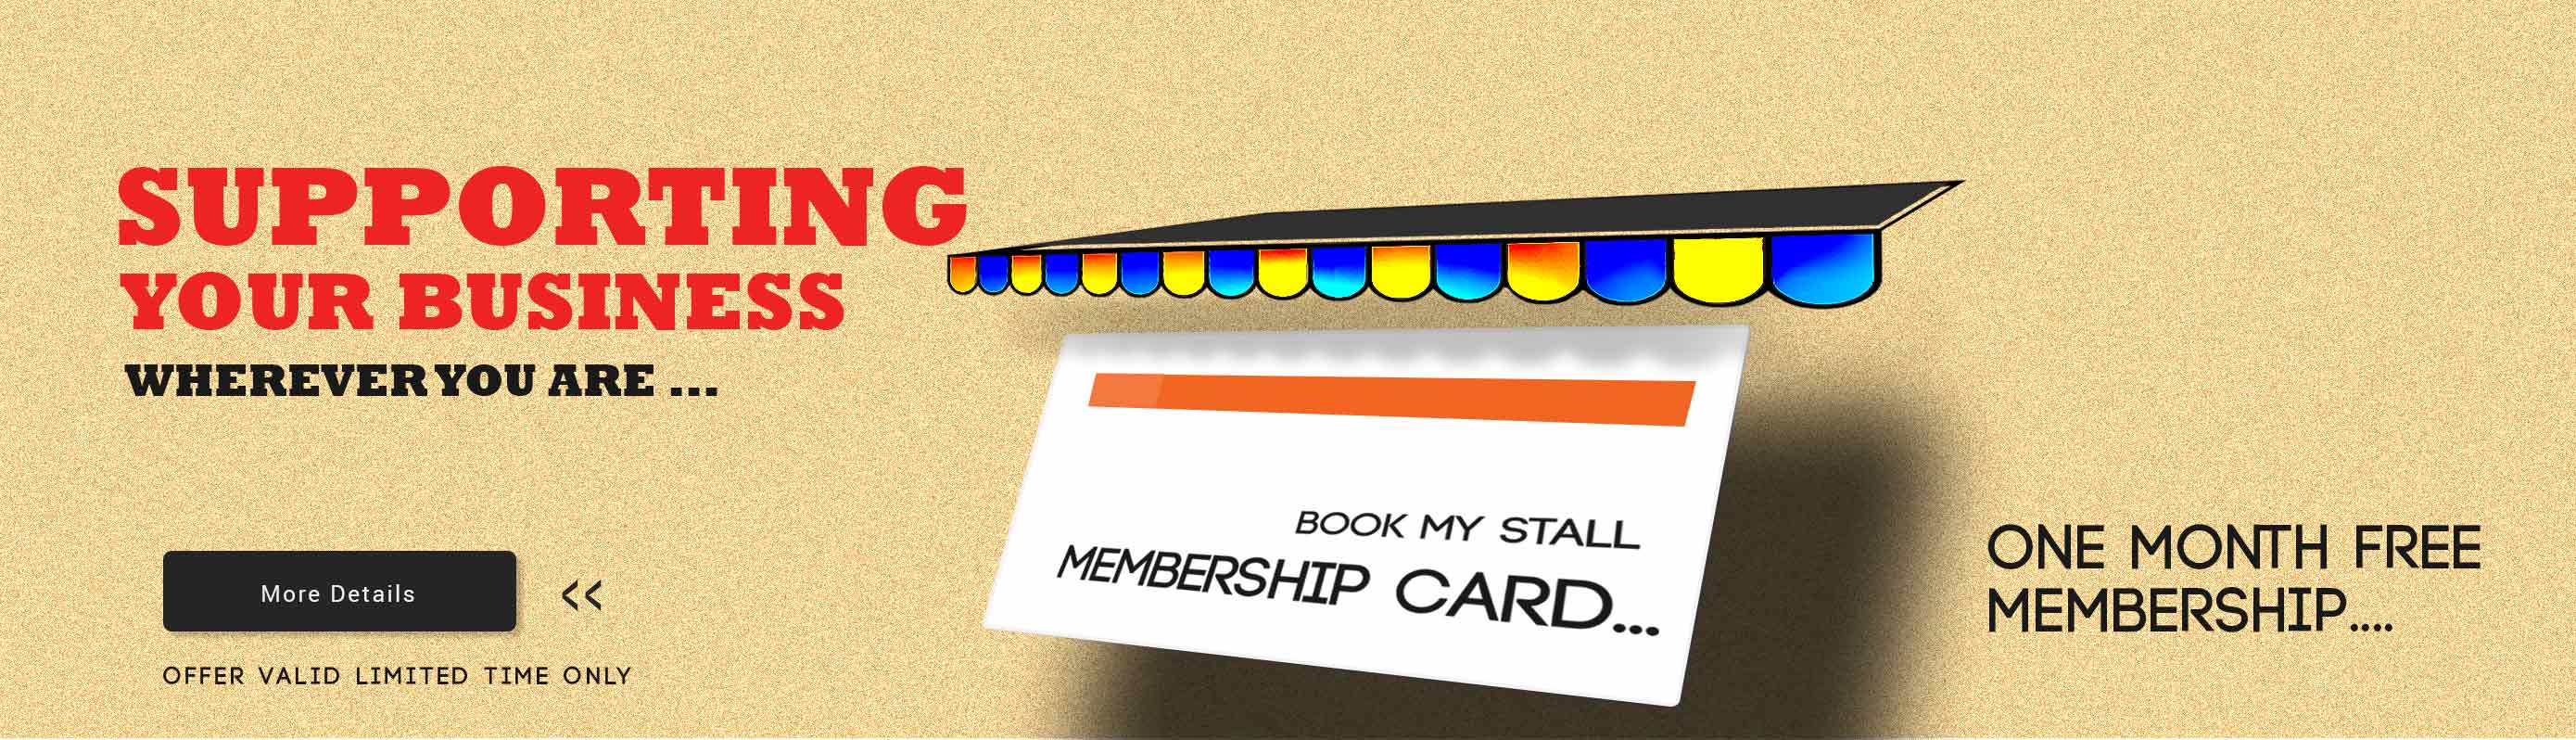 Bookmystall-Membership-Program